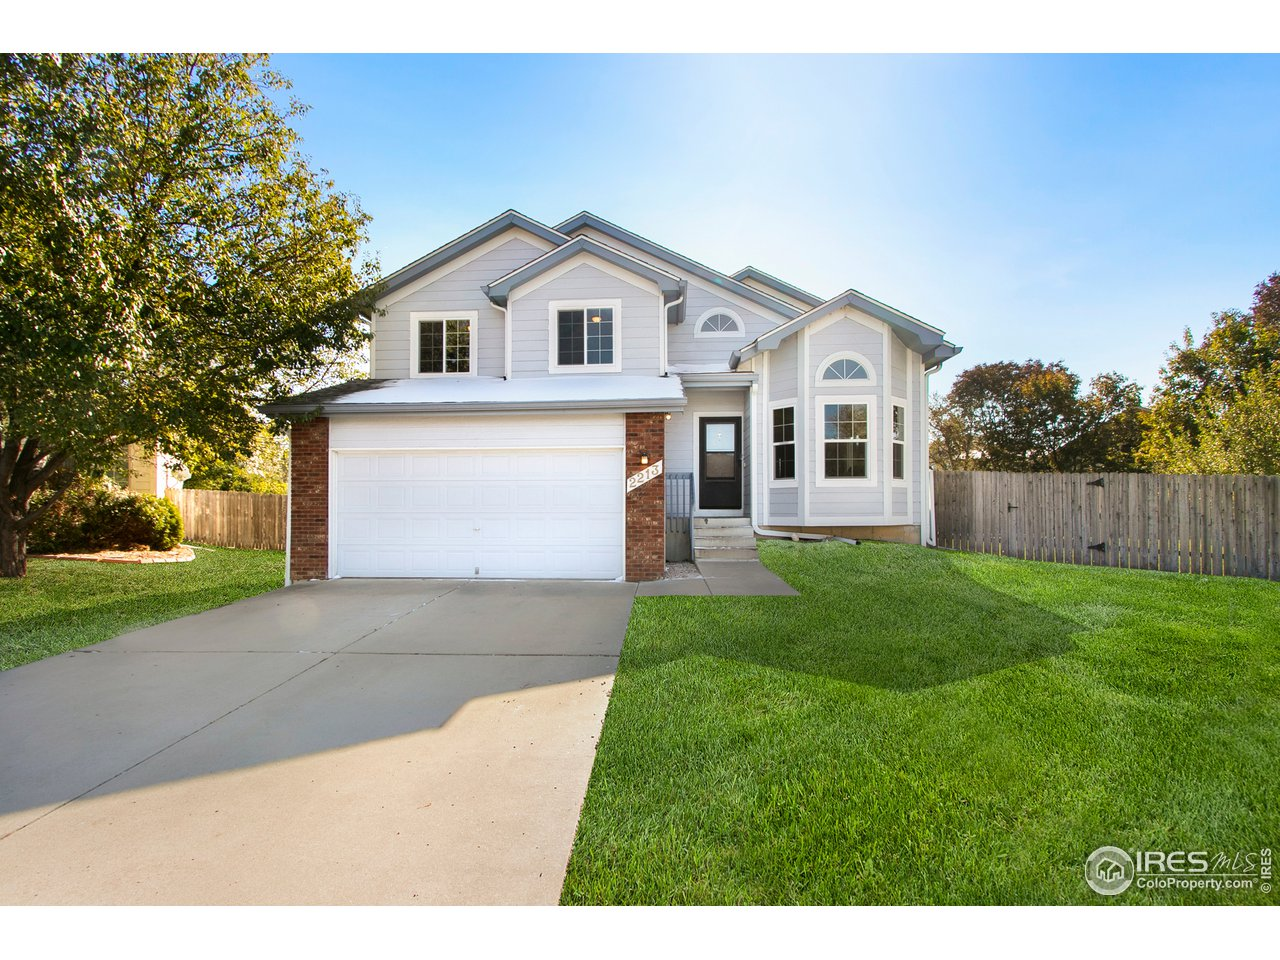 2213 Sunleaf Ct, Fort Collins CO 80525